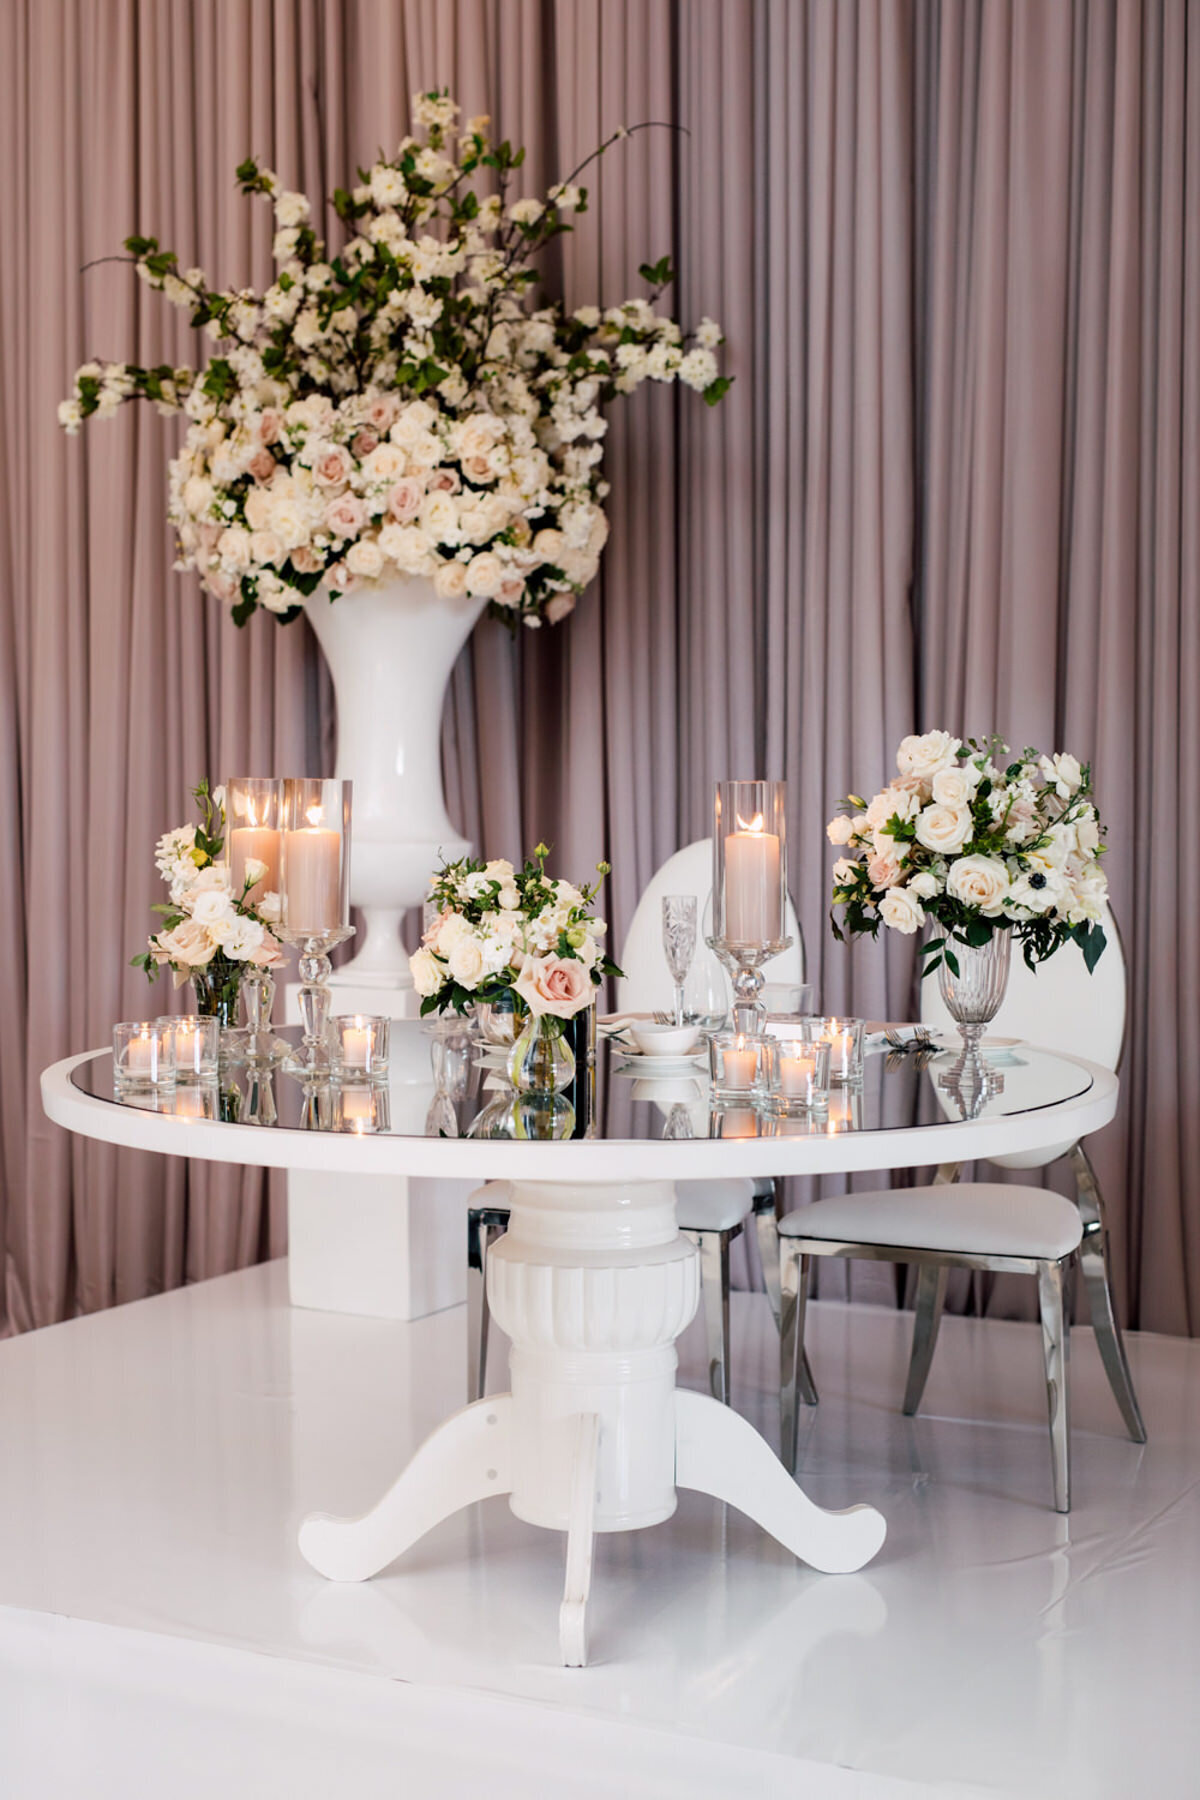 Diana-Pires-Events-TheArlingtonEstate-Vaughan-037